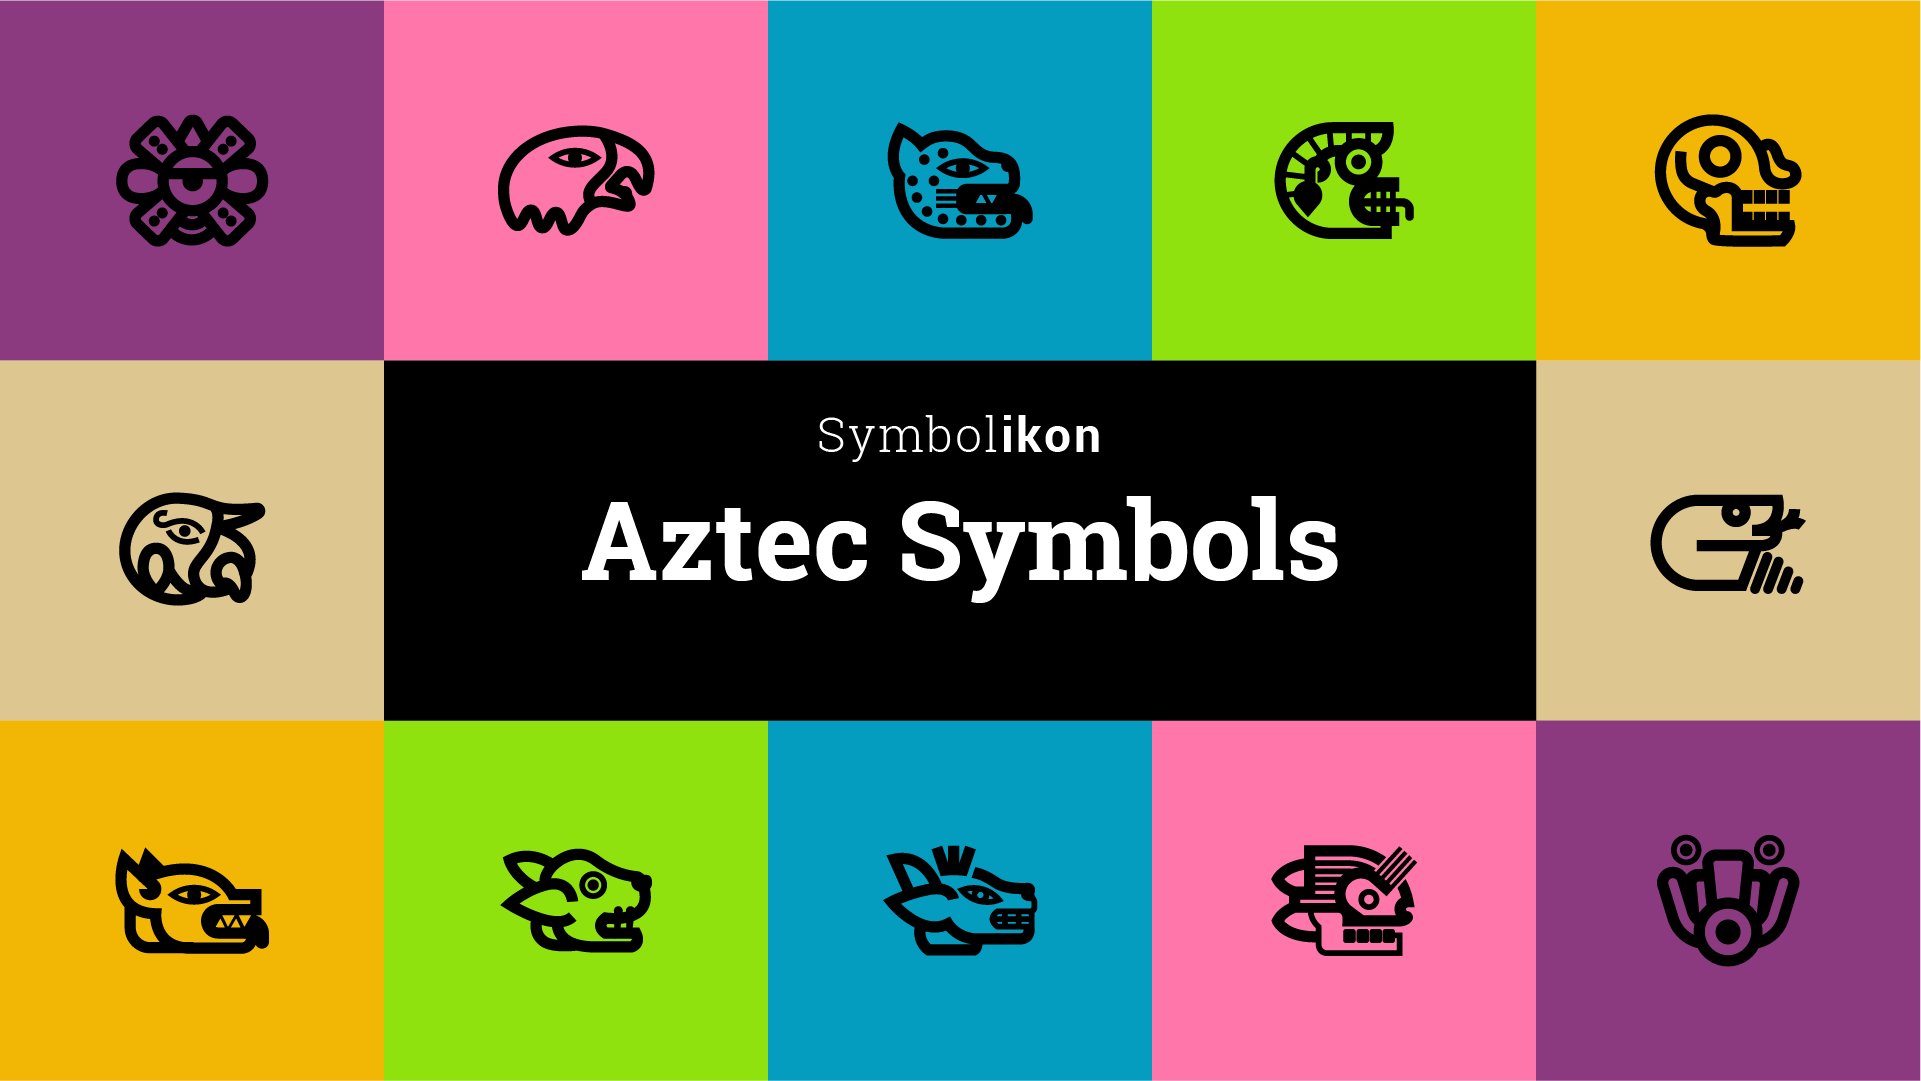 Aztec symbols meanings